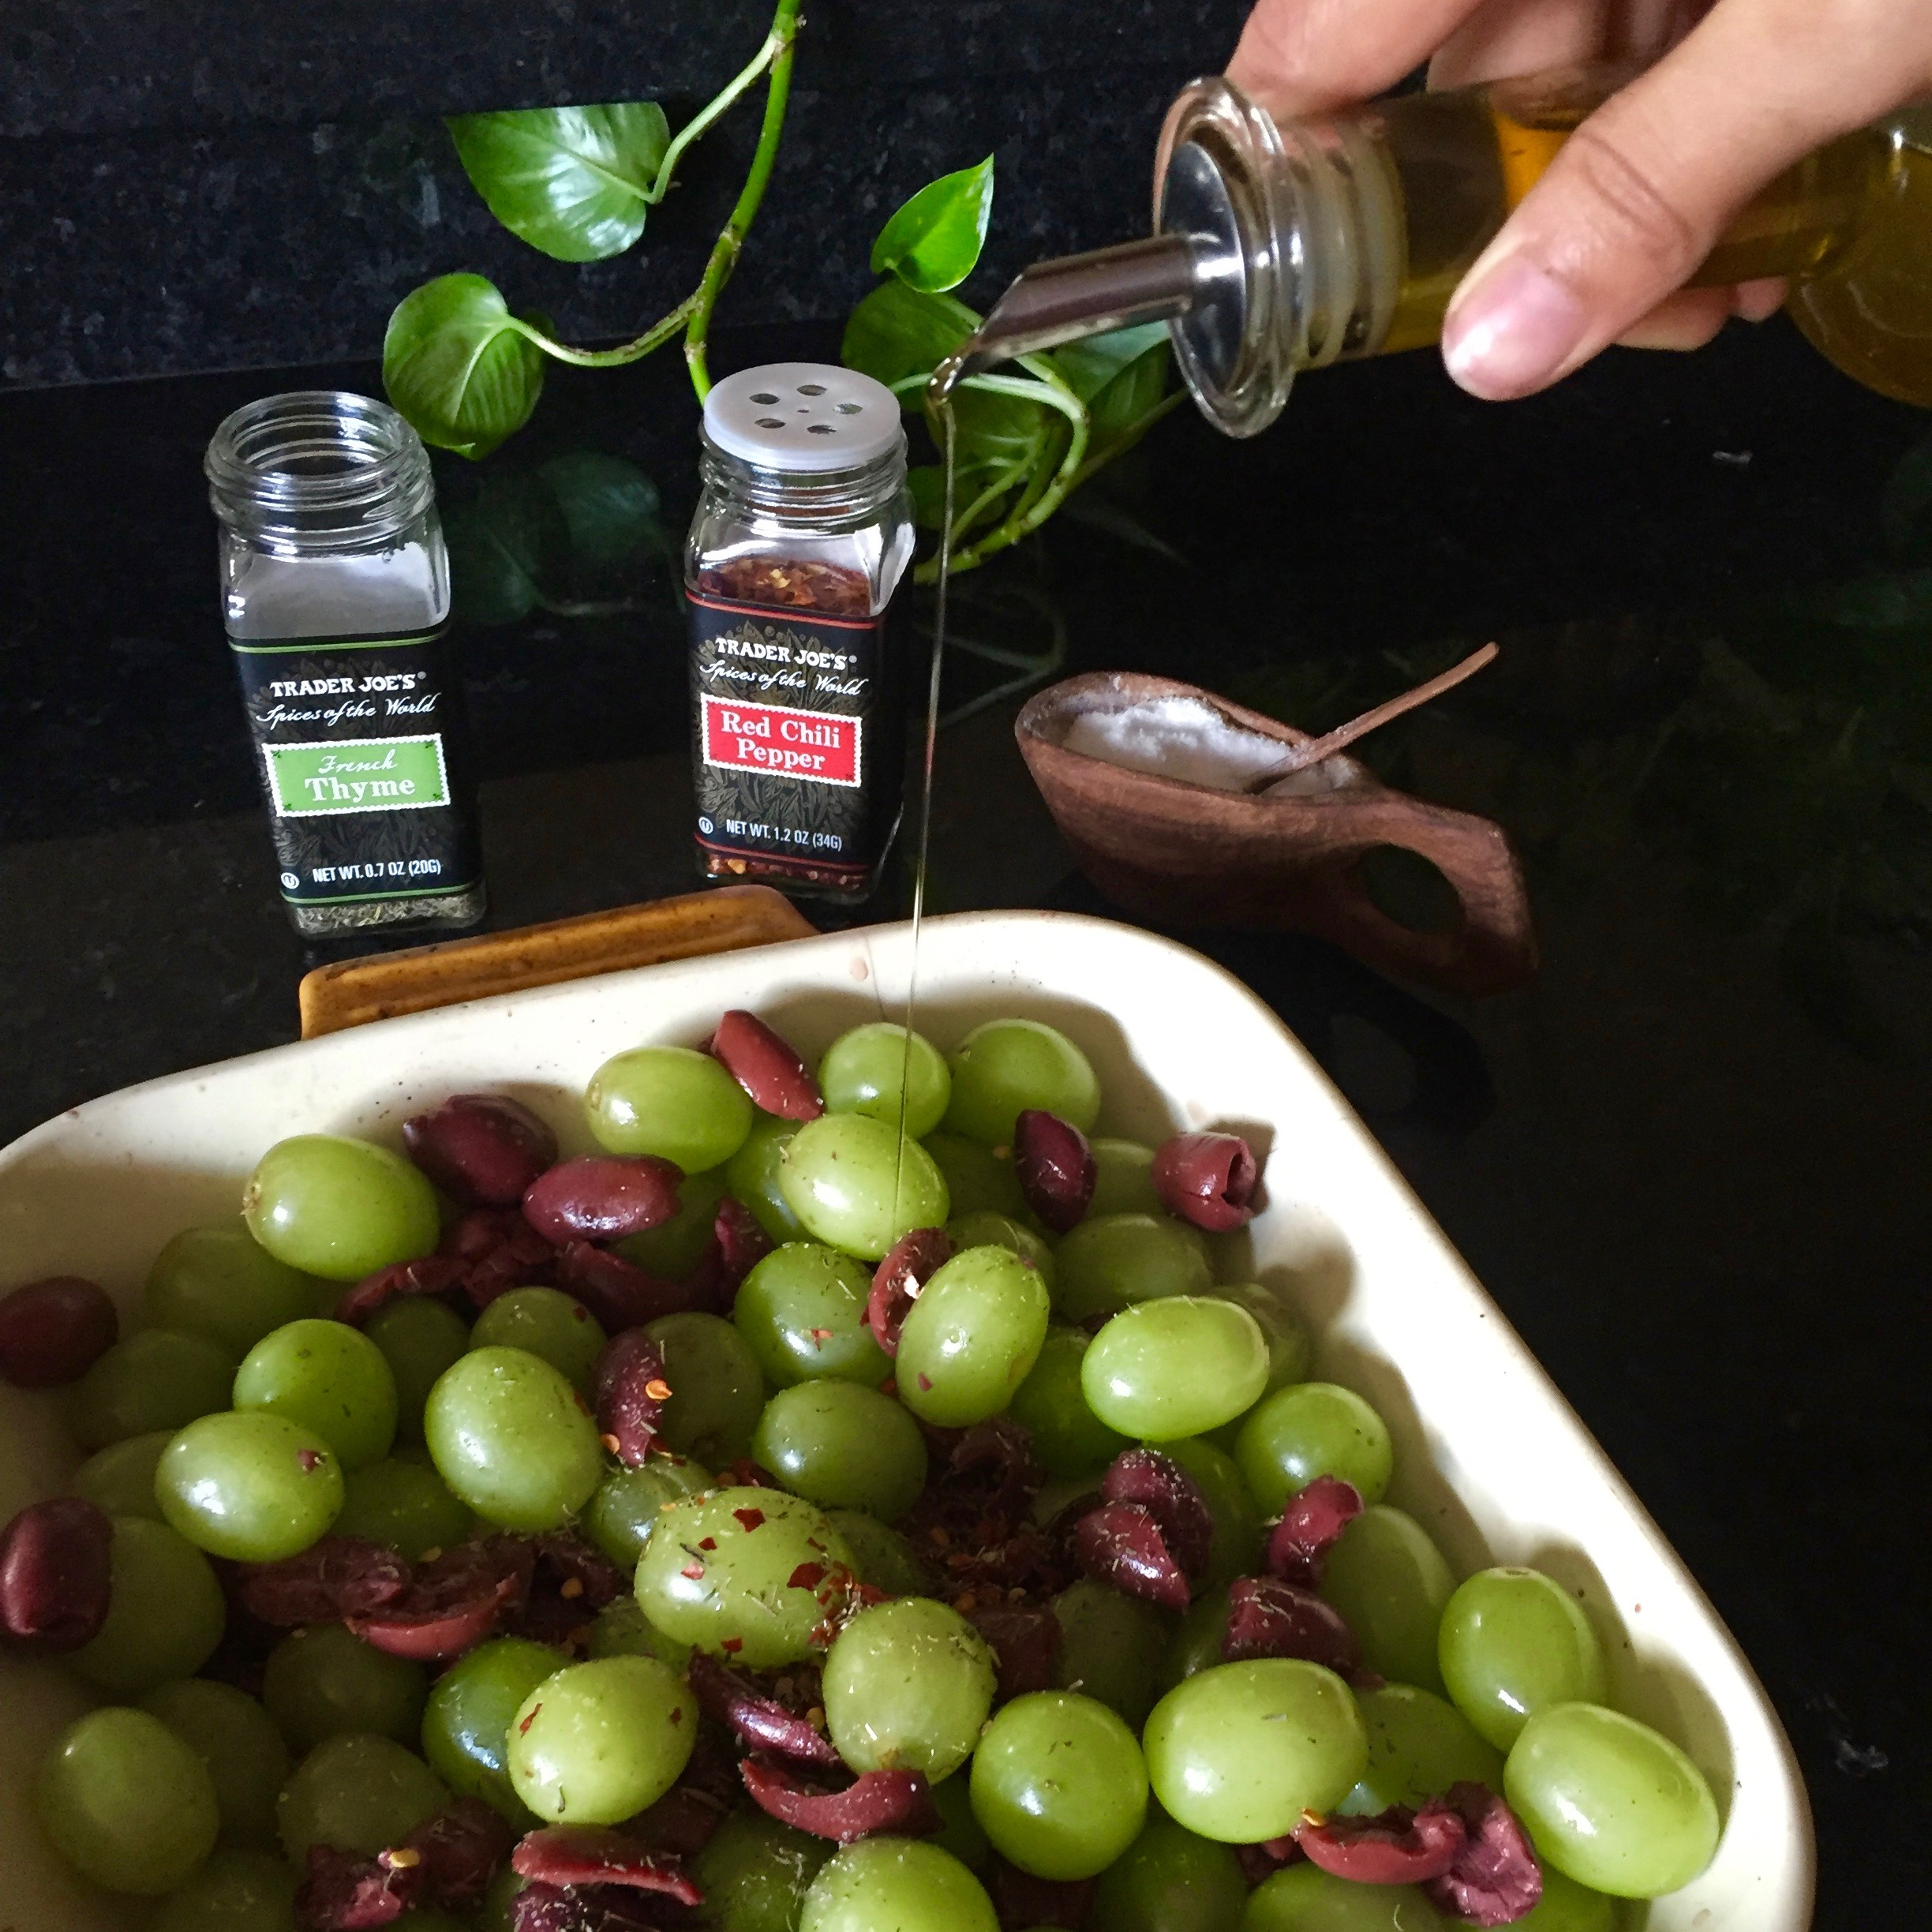 A small drizzle of olive oil, to keep things moist while baking.